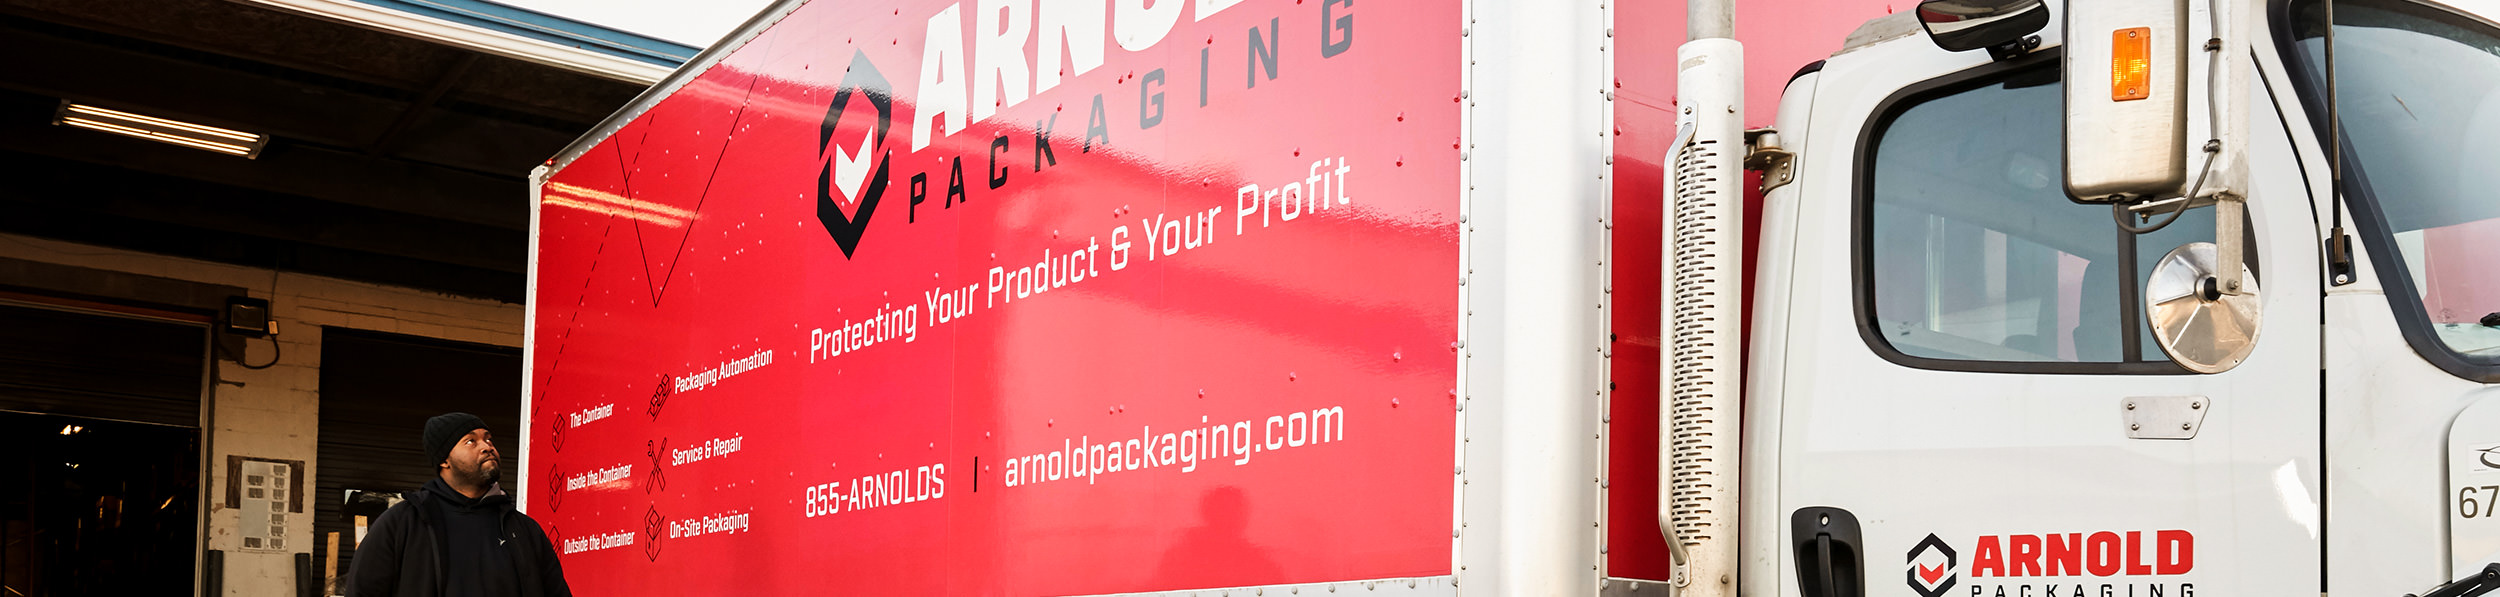 Arnold Packaging - History